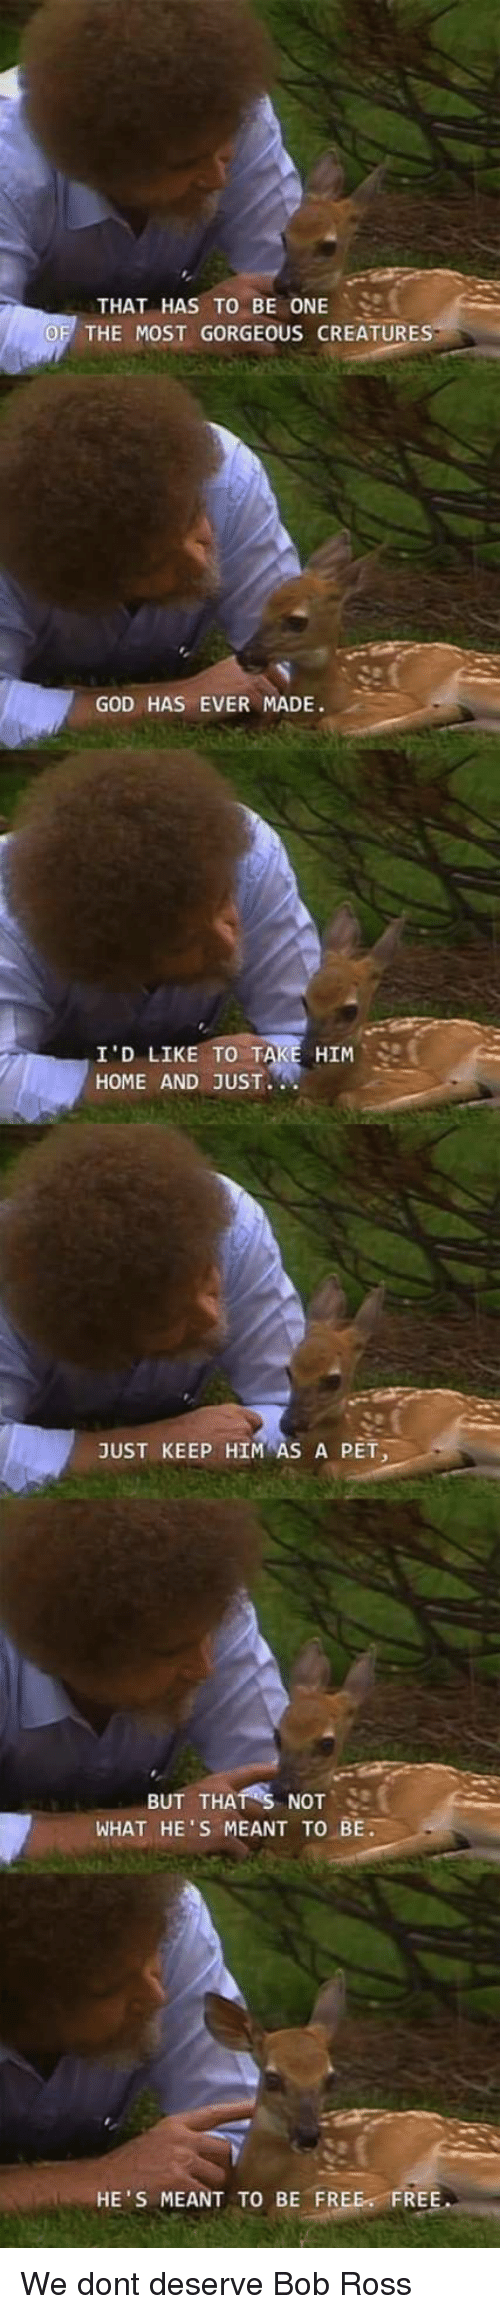 God, Bob Ross, and Free: THAT HAS TO BE ONE ..  THE MOST GORGEOUS CREATURE  GOD HAS EVER MADE.  HIM  I'D LIKE TO T  HOME AND JUST  JUST KEEP HIM AS A PET  BUT THATS NOT, SI  WHAT HE'S MEANT TO BE.  HE'S MEANT TO BE FREE FREE We dont deserve Bob Ross